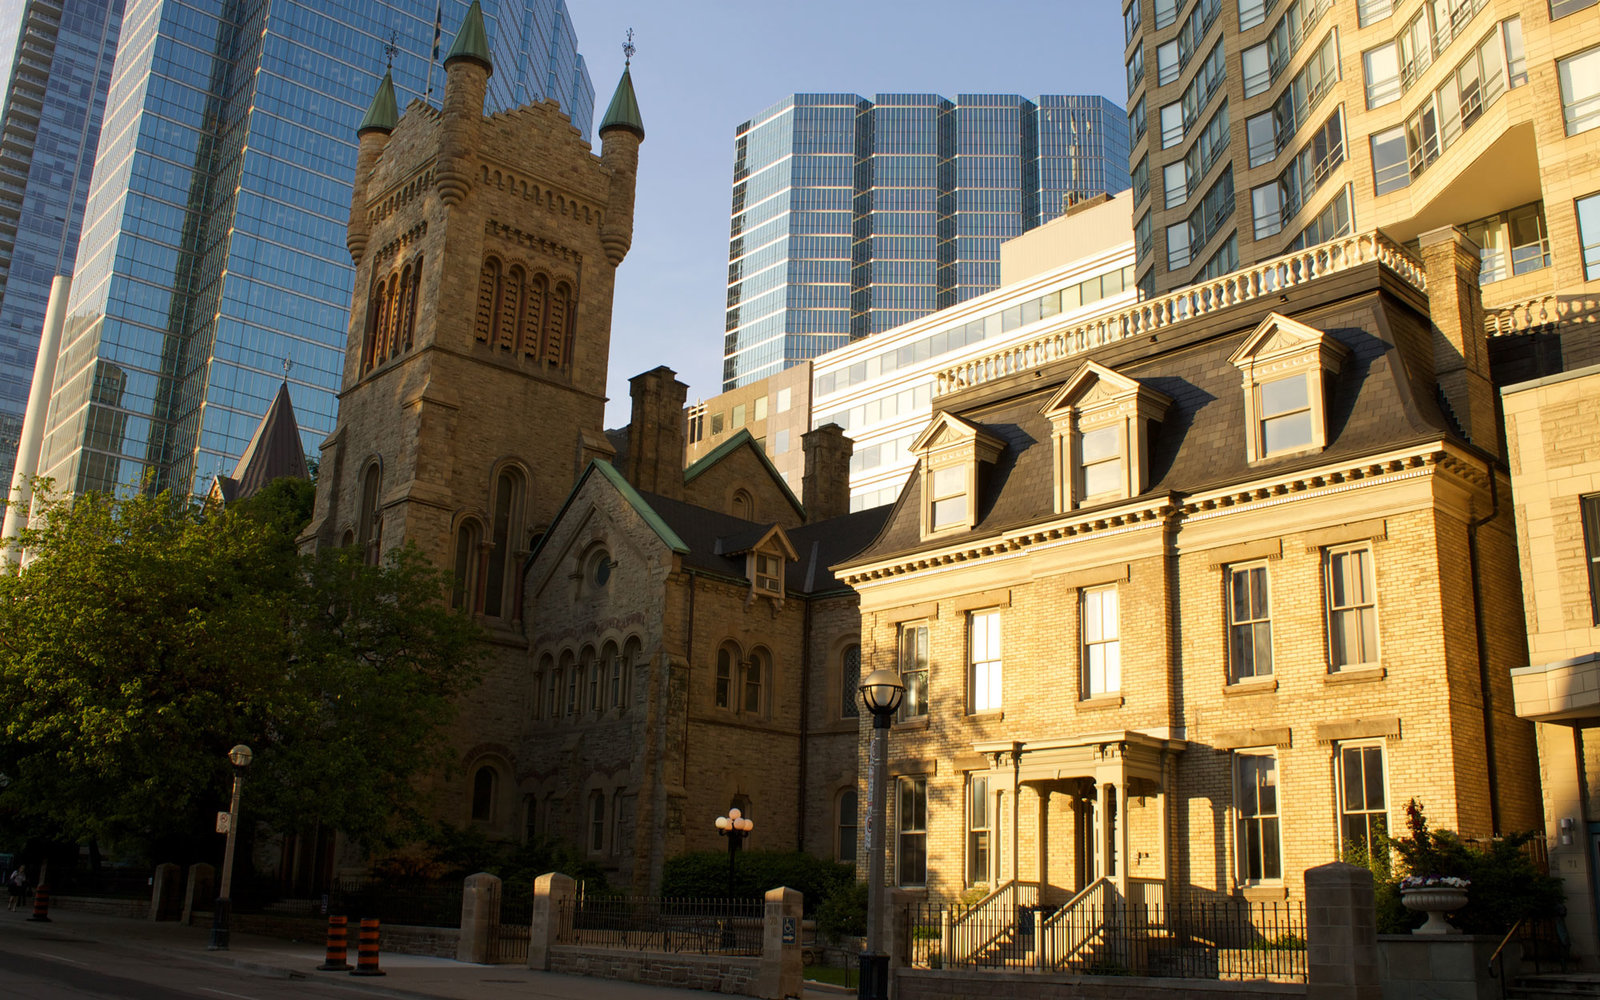 Visit TV Show Locations Hannibal St Andrews Toronto